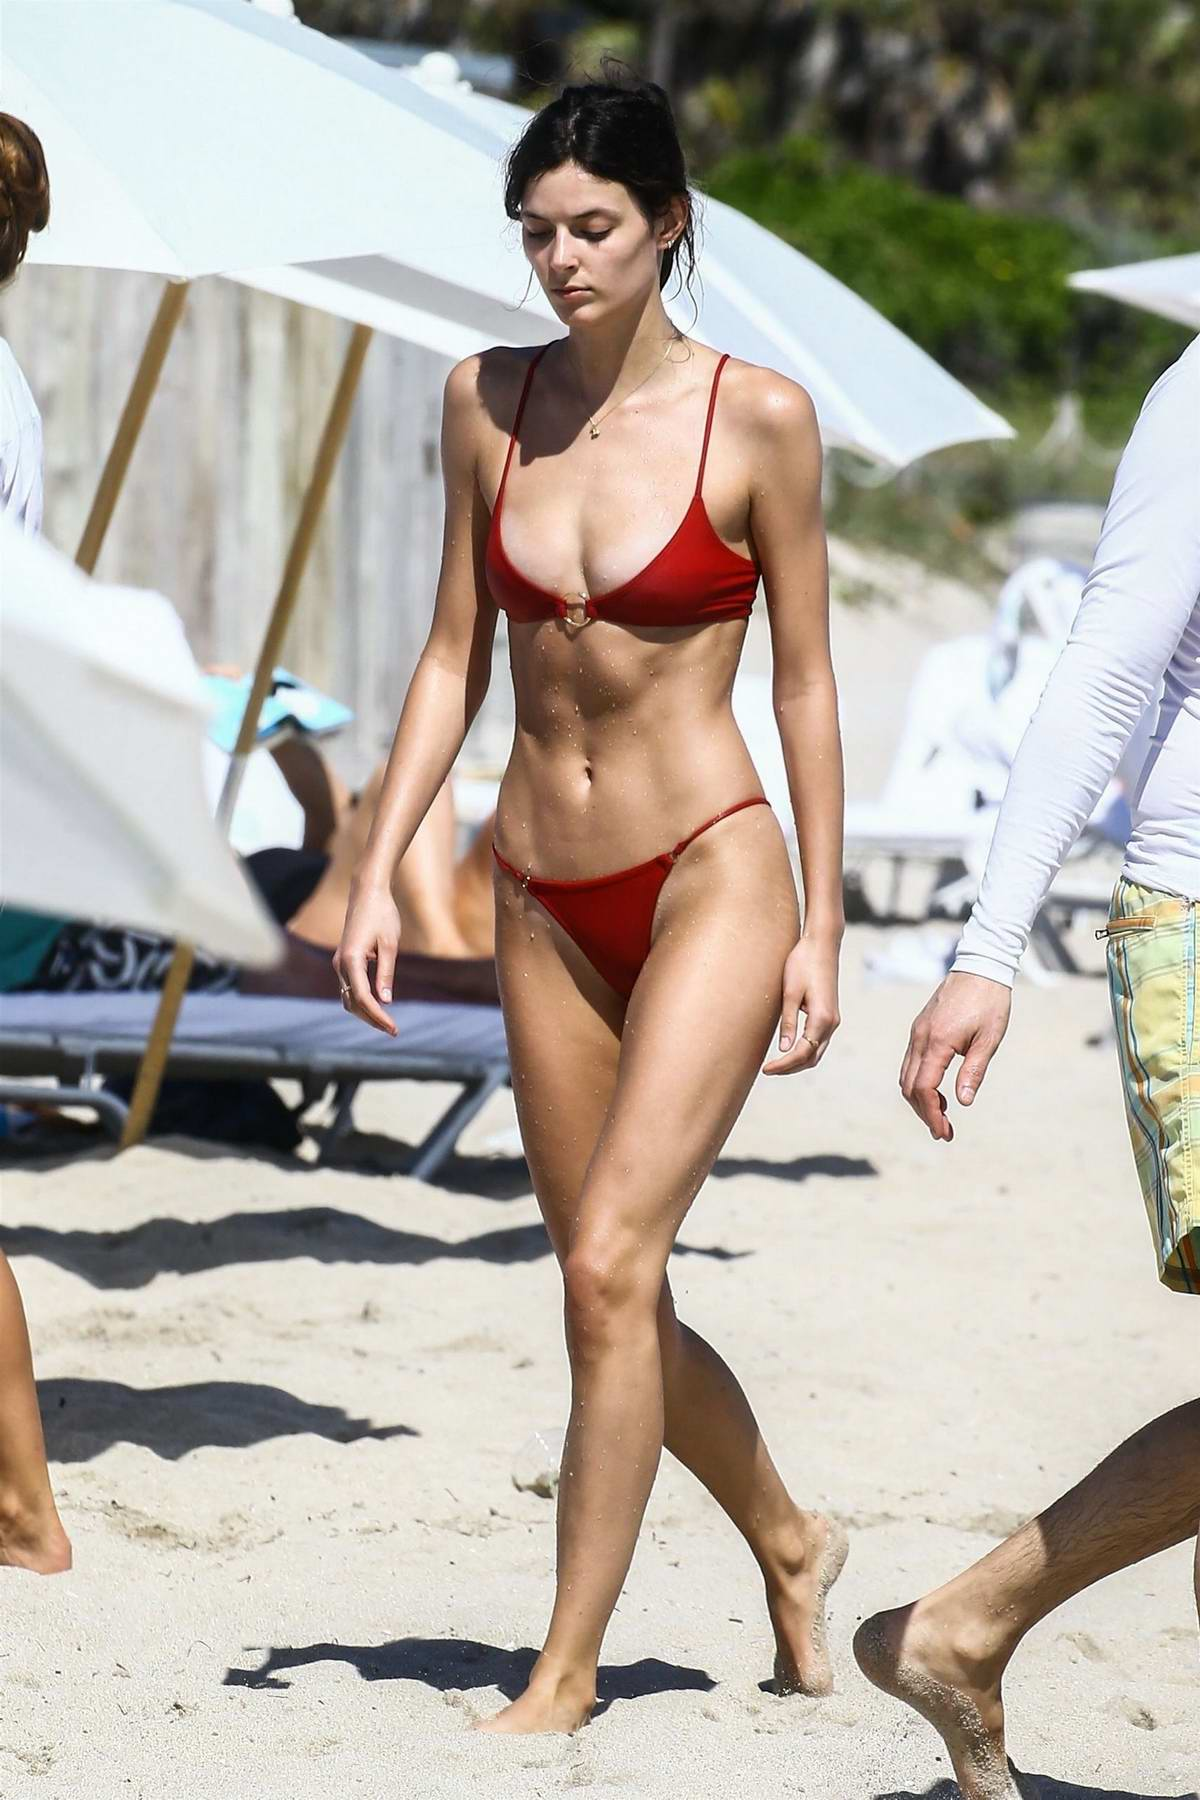 Sadie Newman in a red bikini enjoys a day on the beach in Miami, Florida